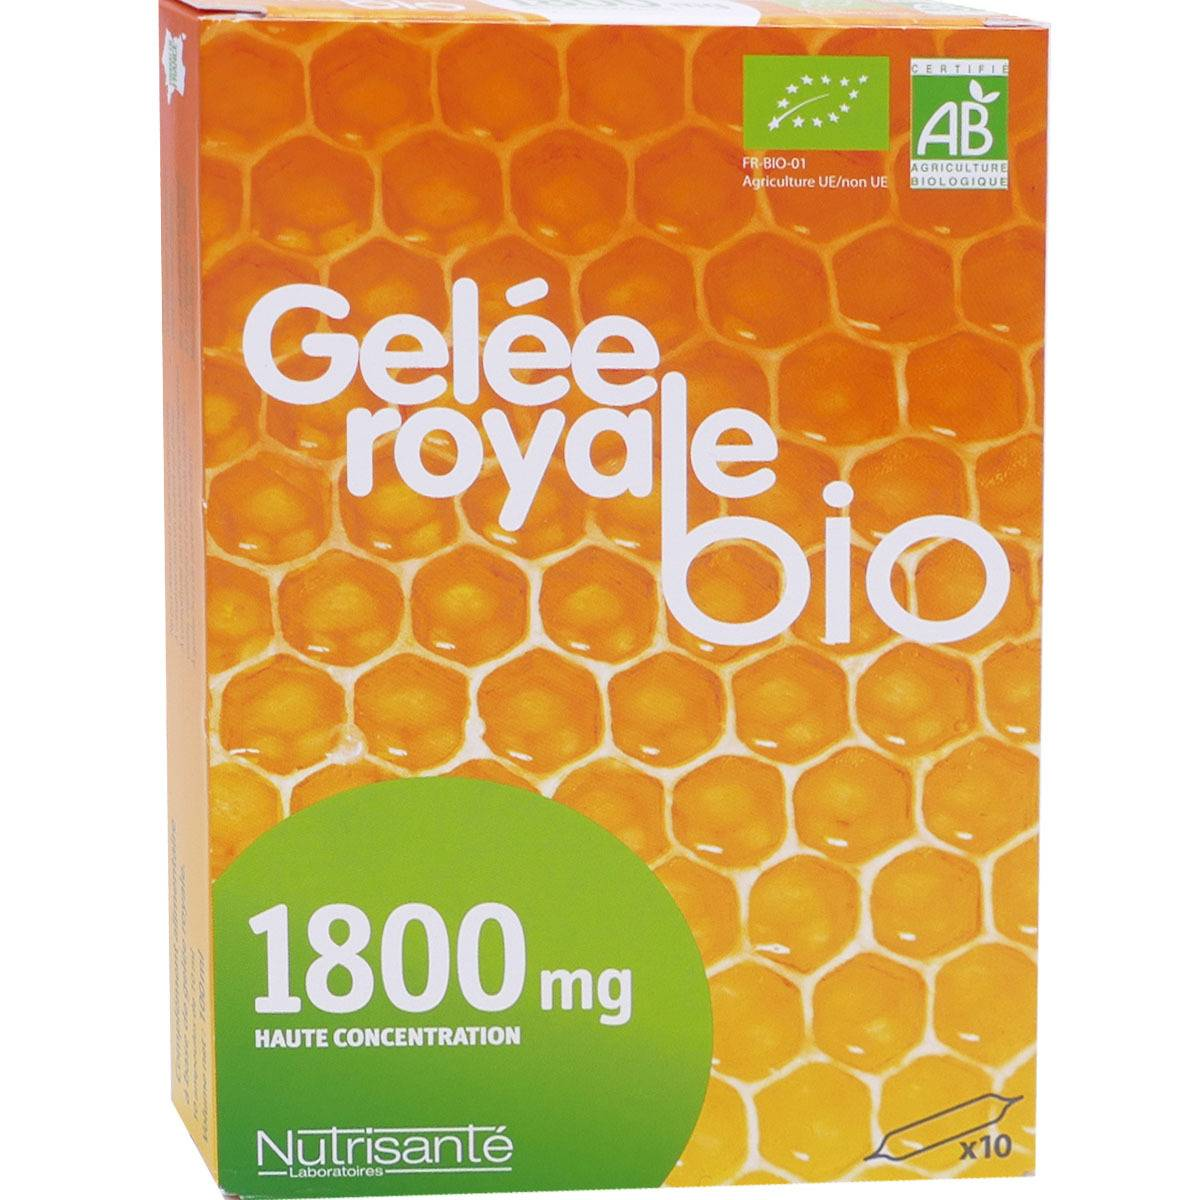 Nutrisante gelee royale bio 1800 mg 10 ml x 10 ampoules